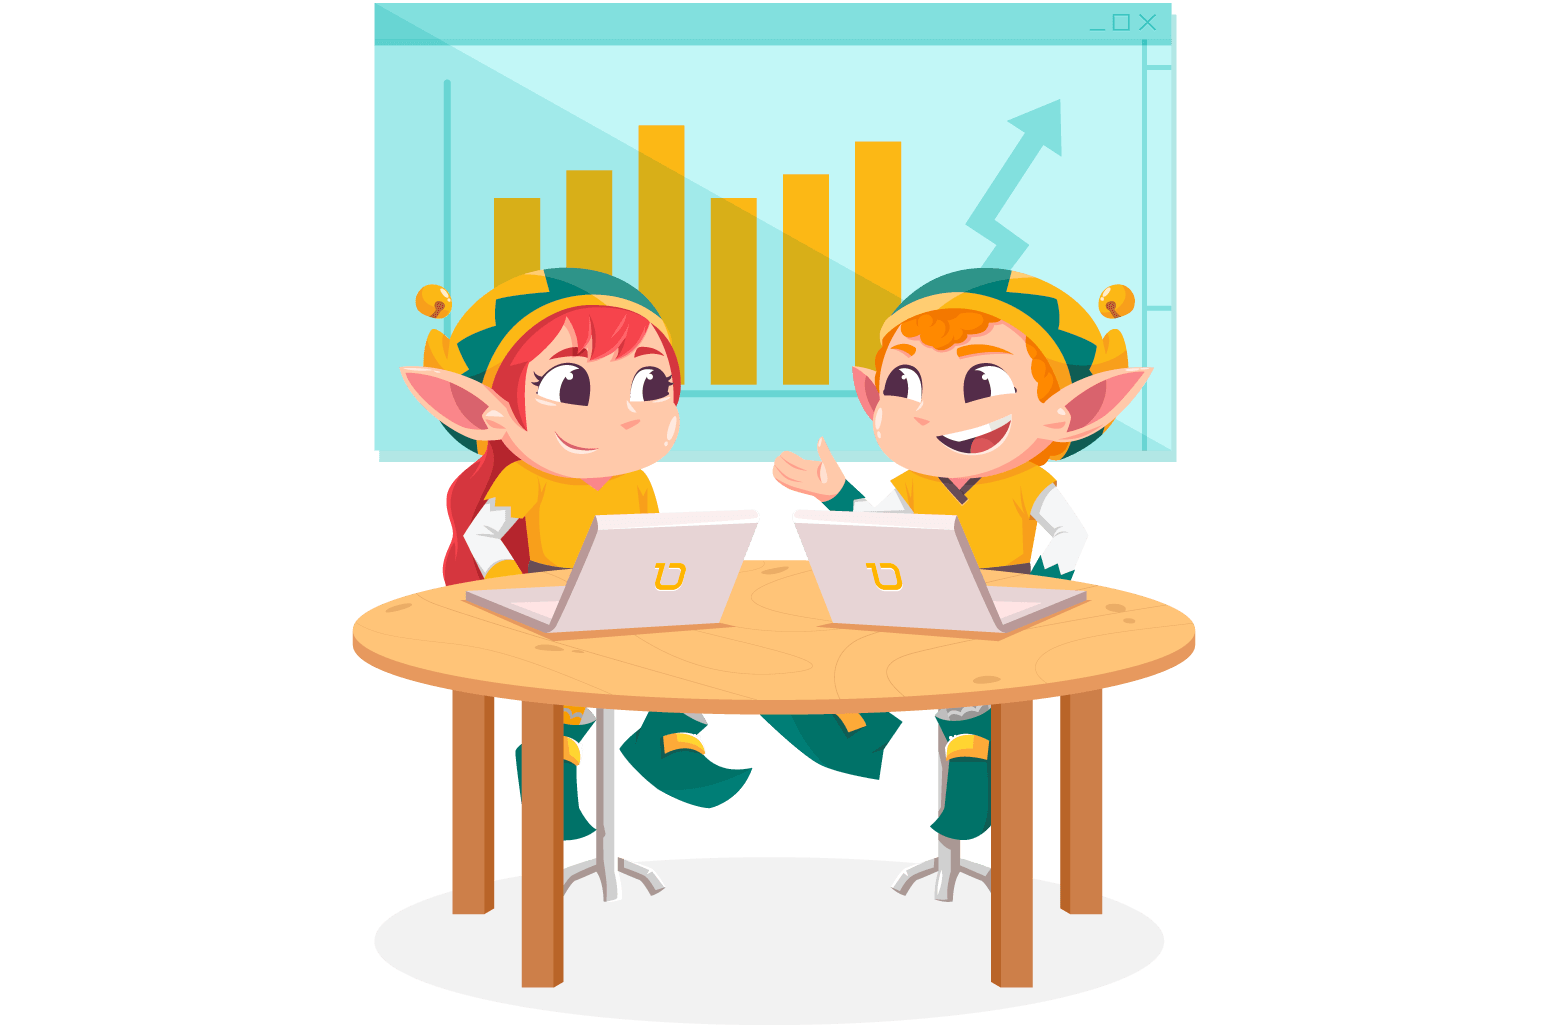 Illustration of two elfs working on their laptop